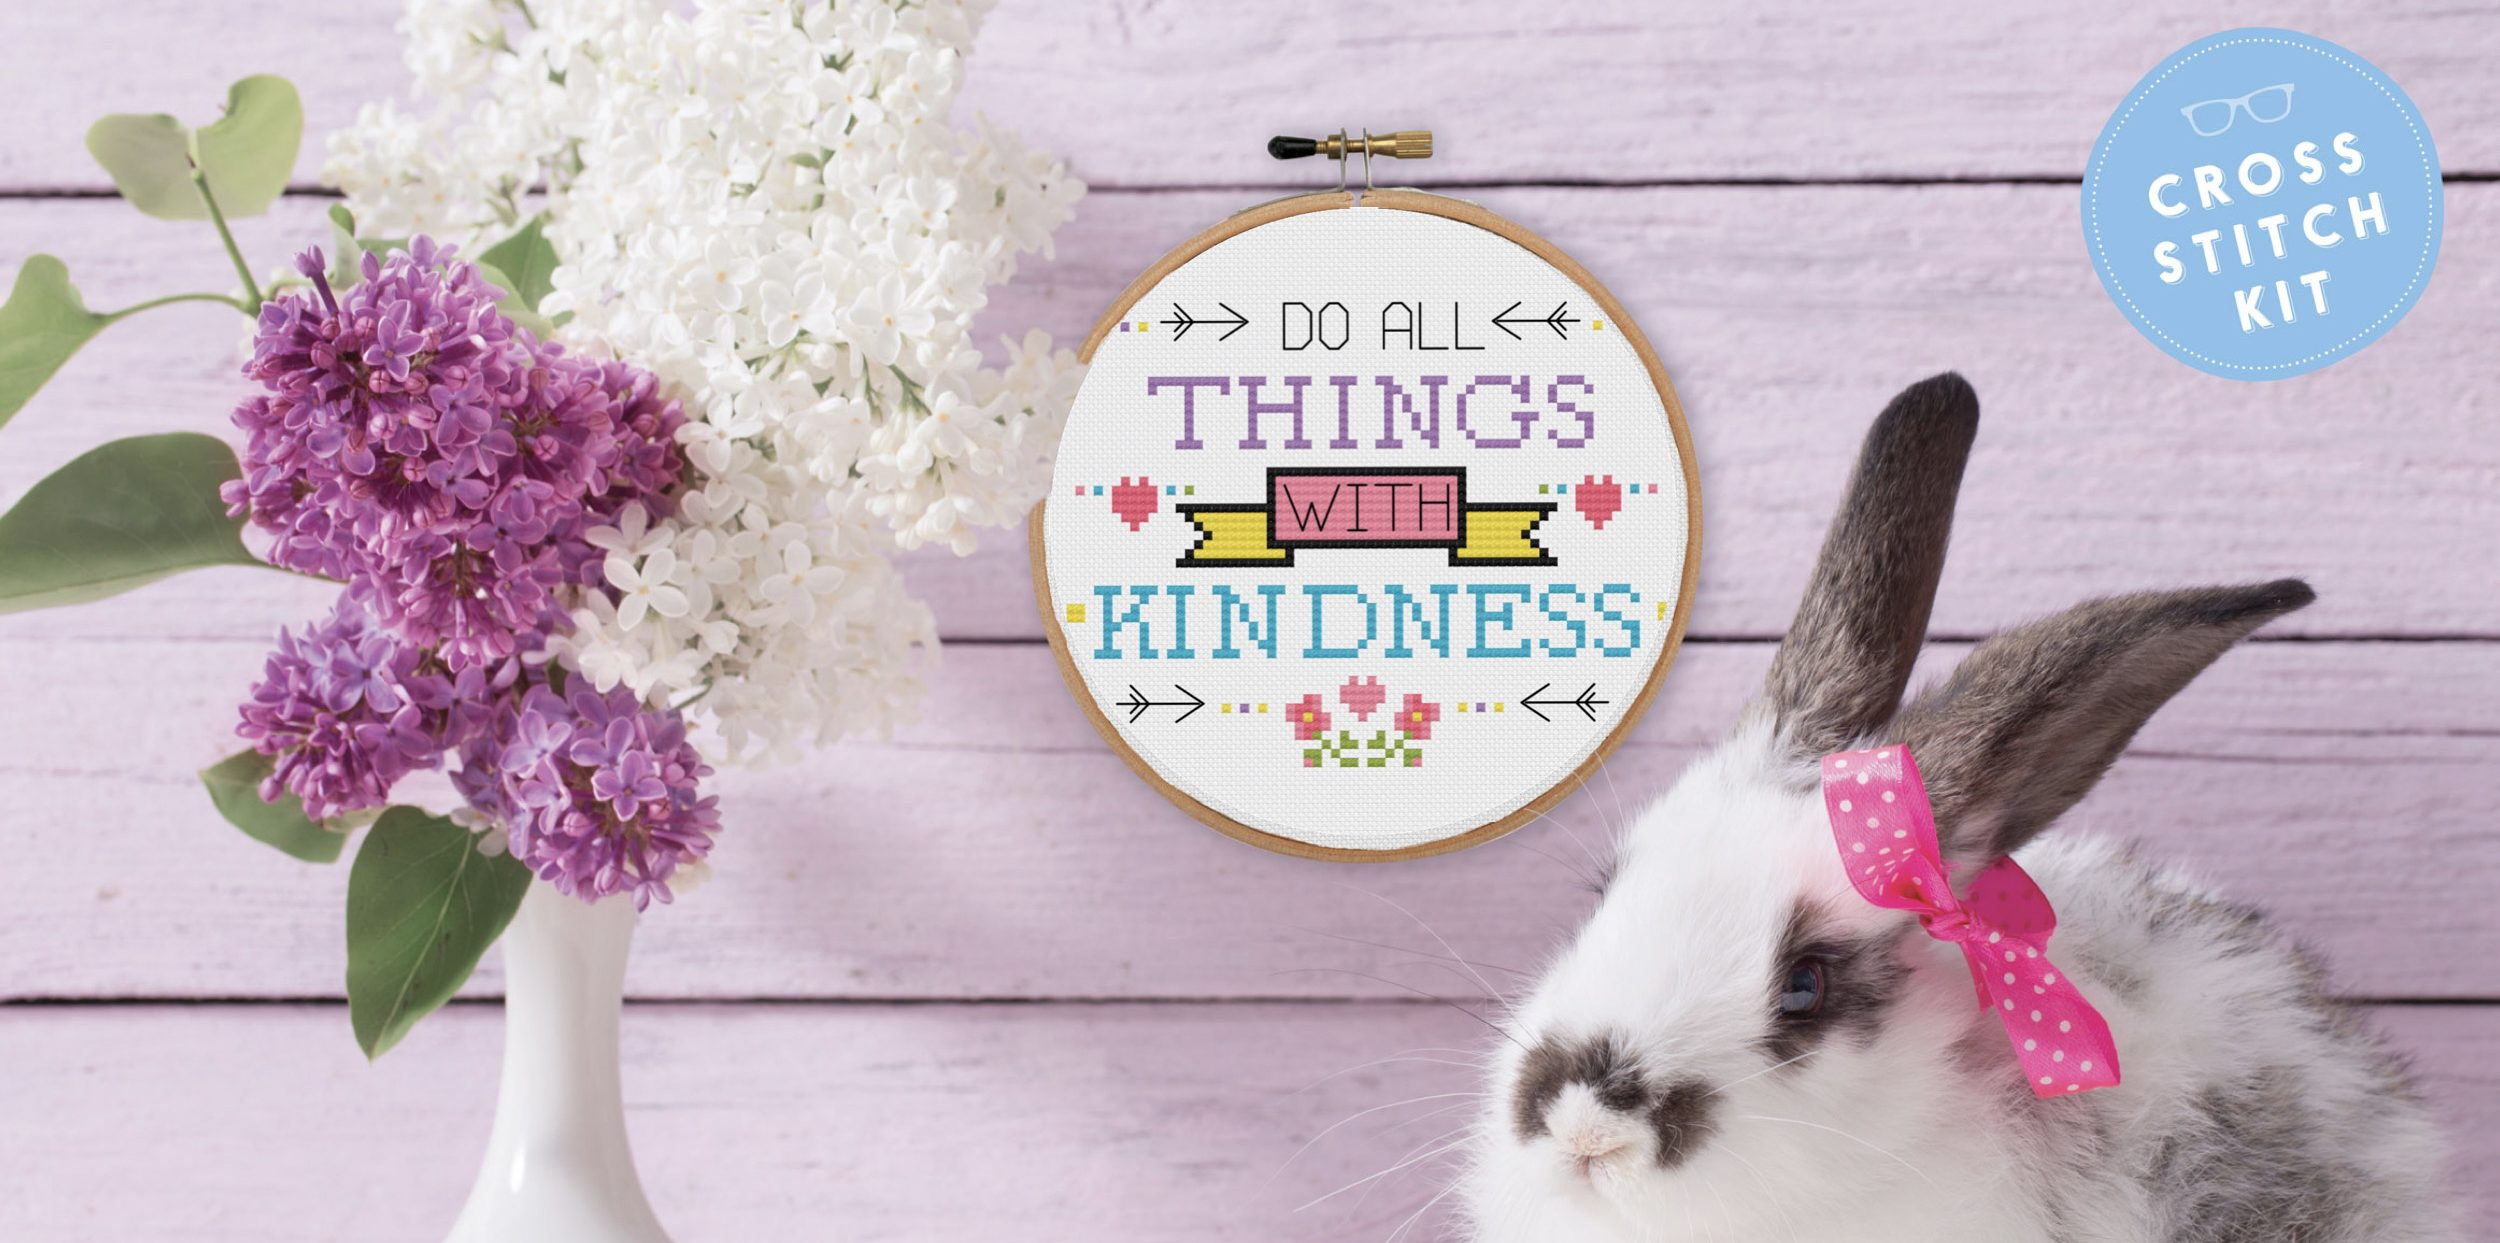 Do All Things With Kindness Cross Stitch Kit The Geeky Stitching Co